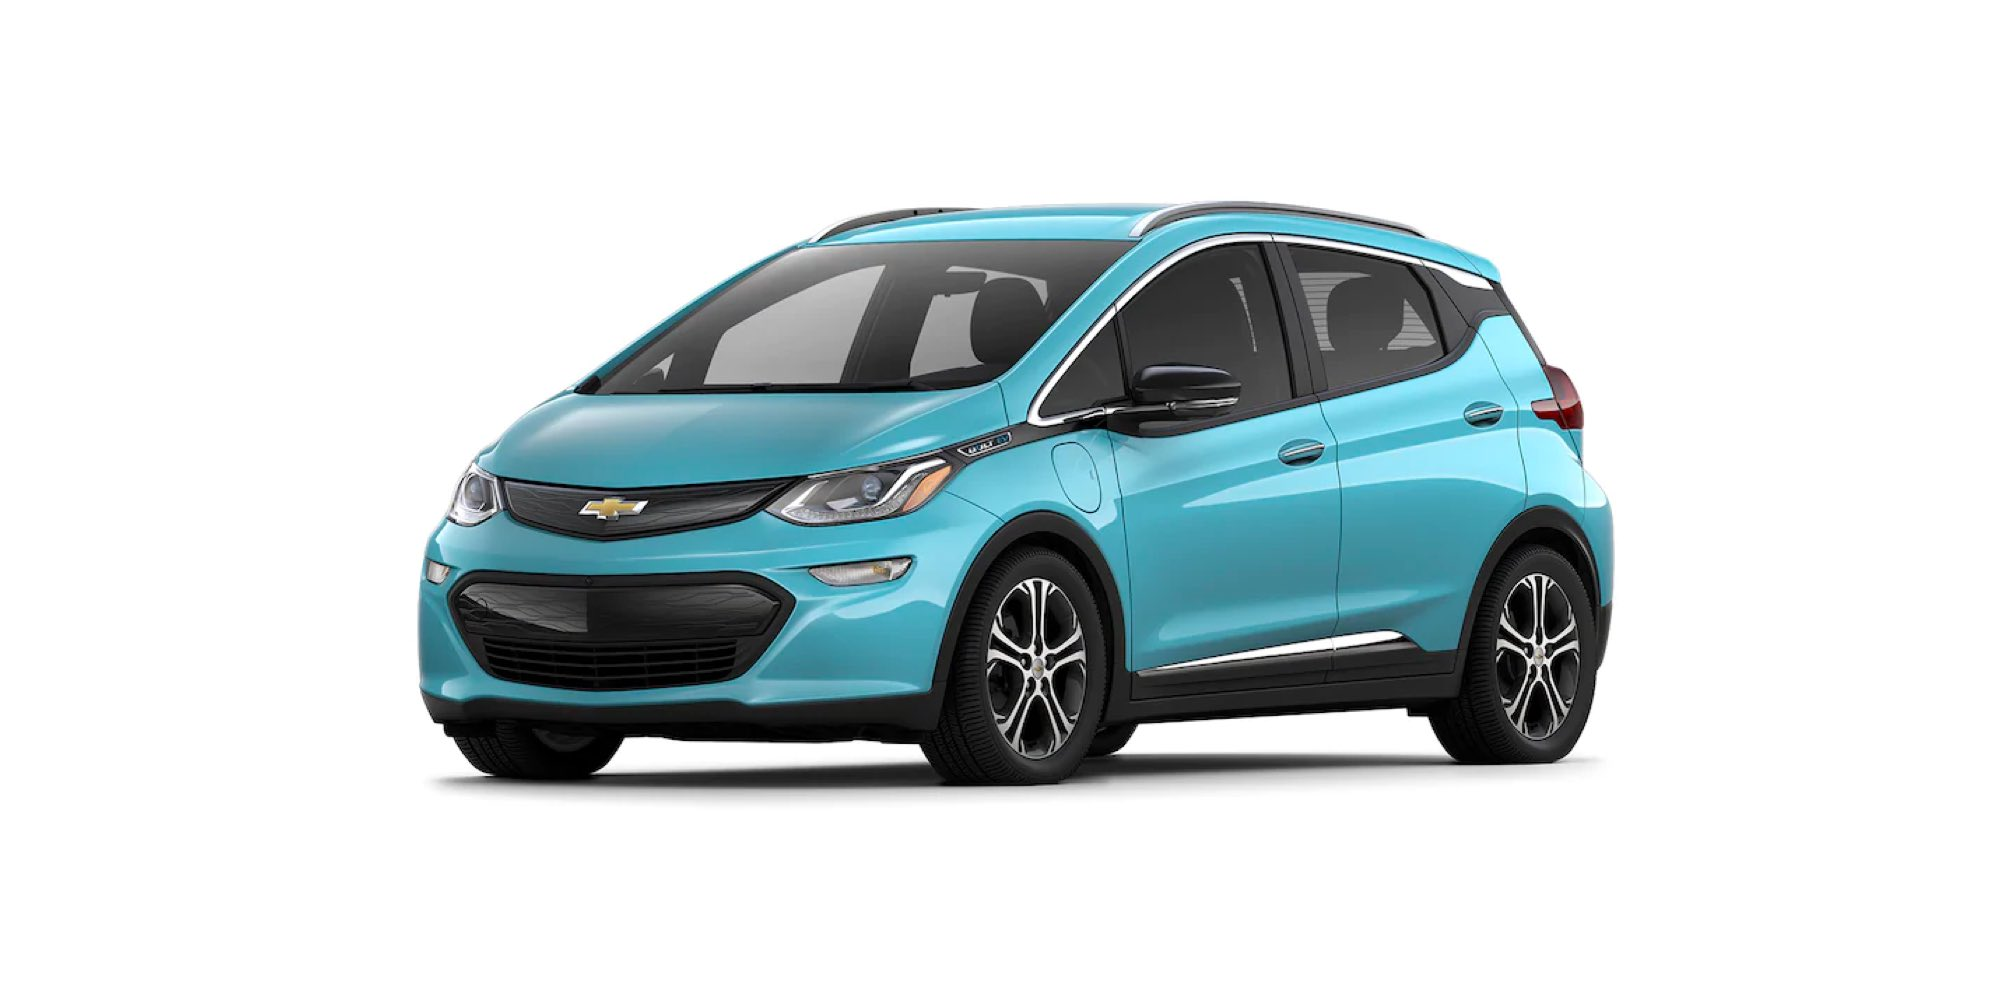 2021 Chevy Bolt EV in Oasis Blue